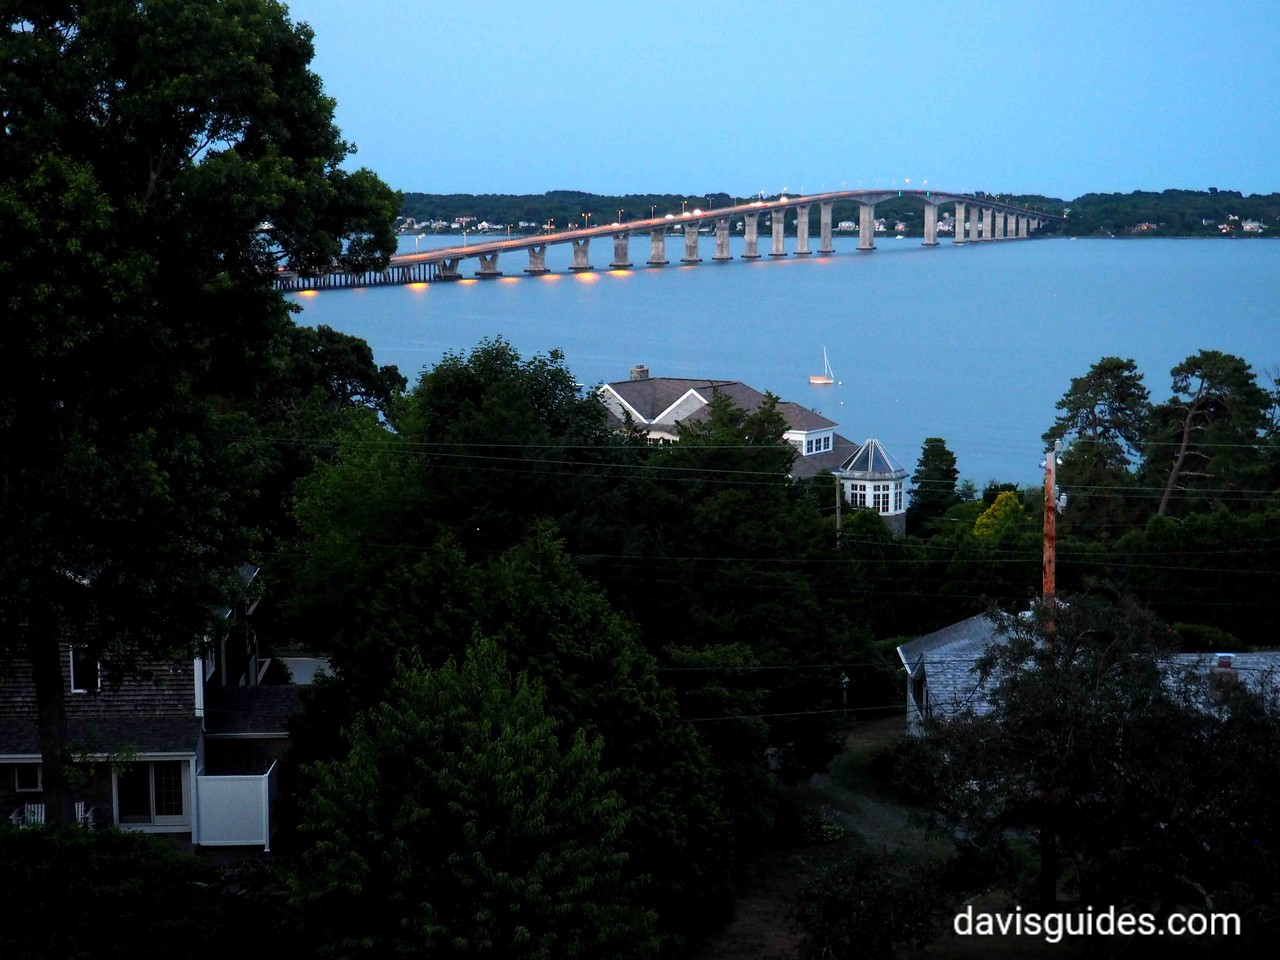 bridge over Naragansett Bay from AirBNB terrace, North Kingstown, RI